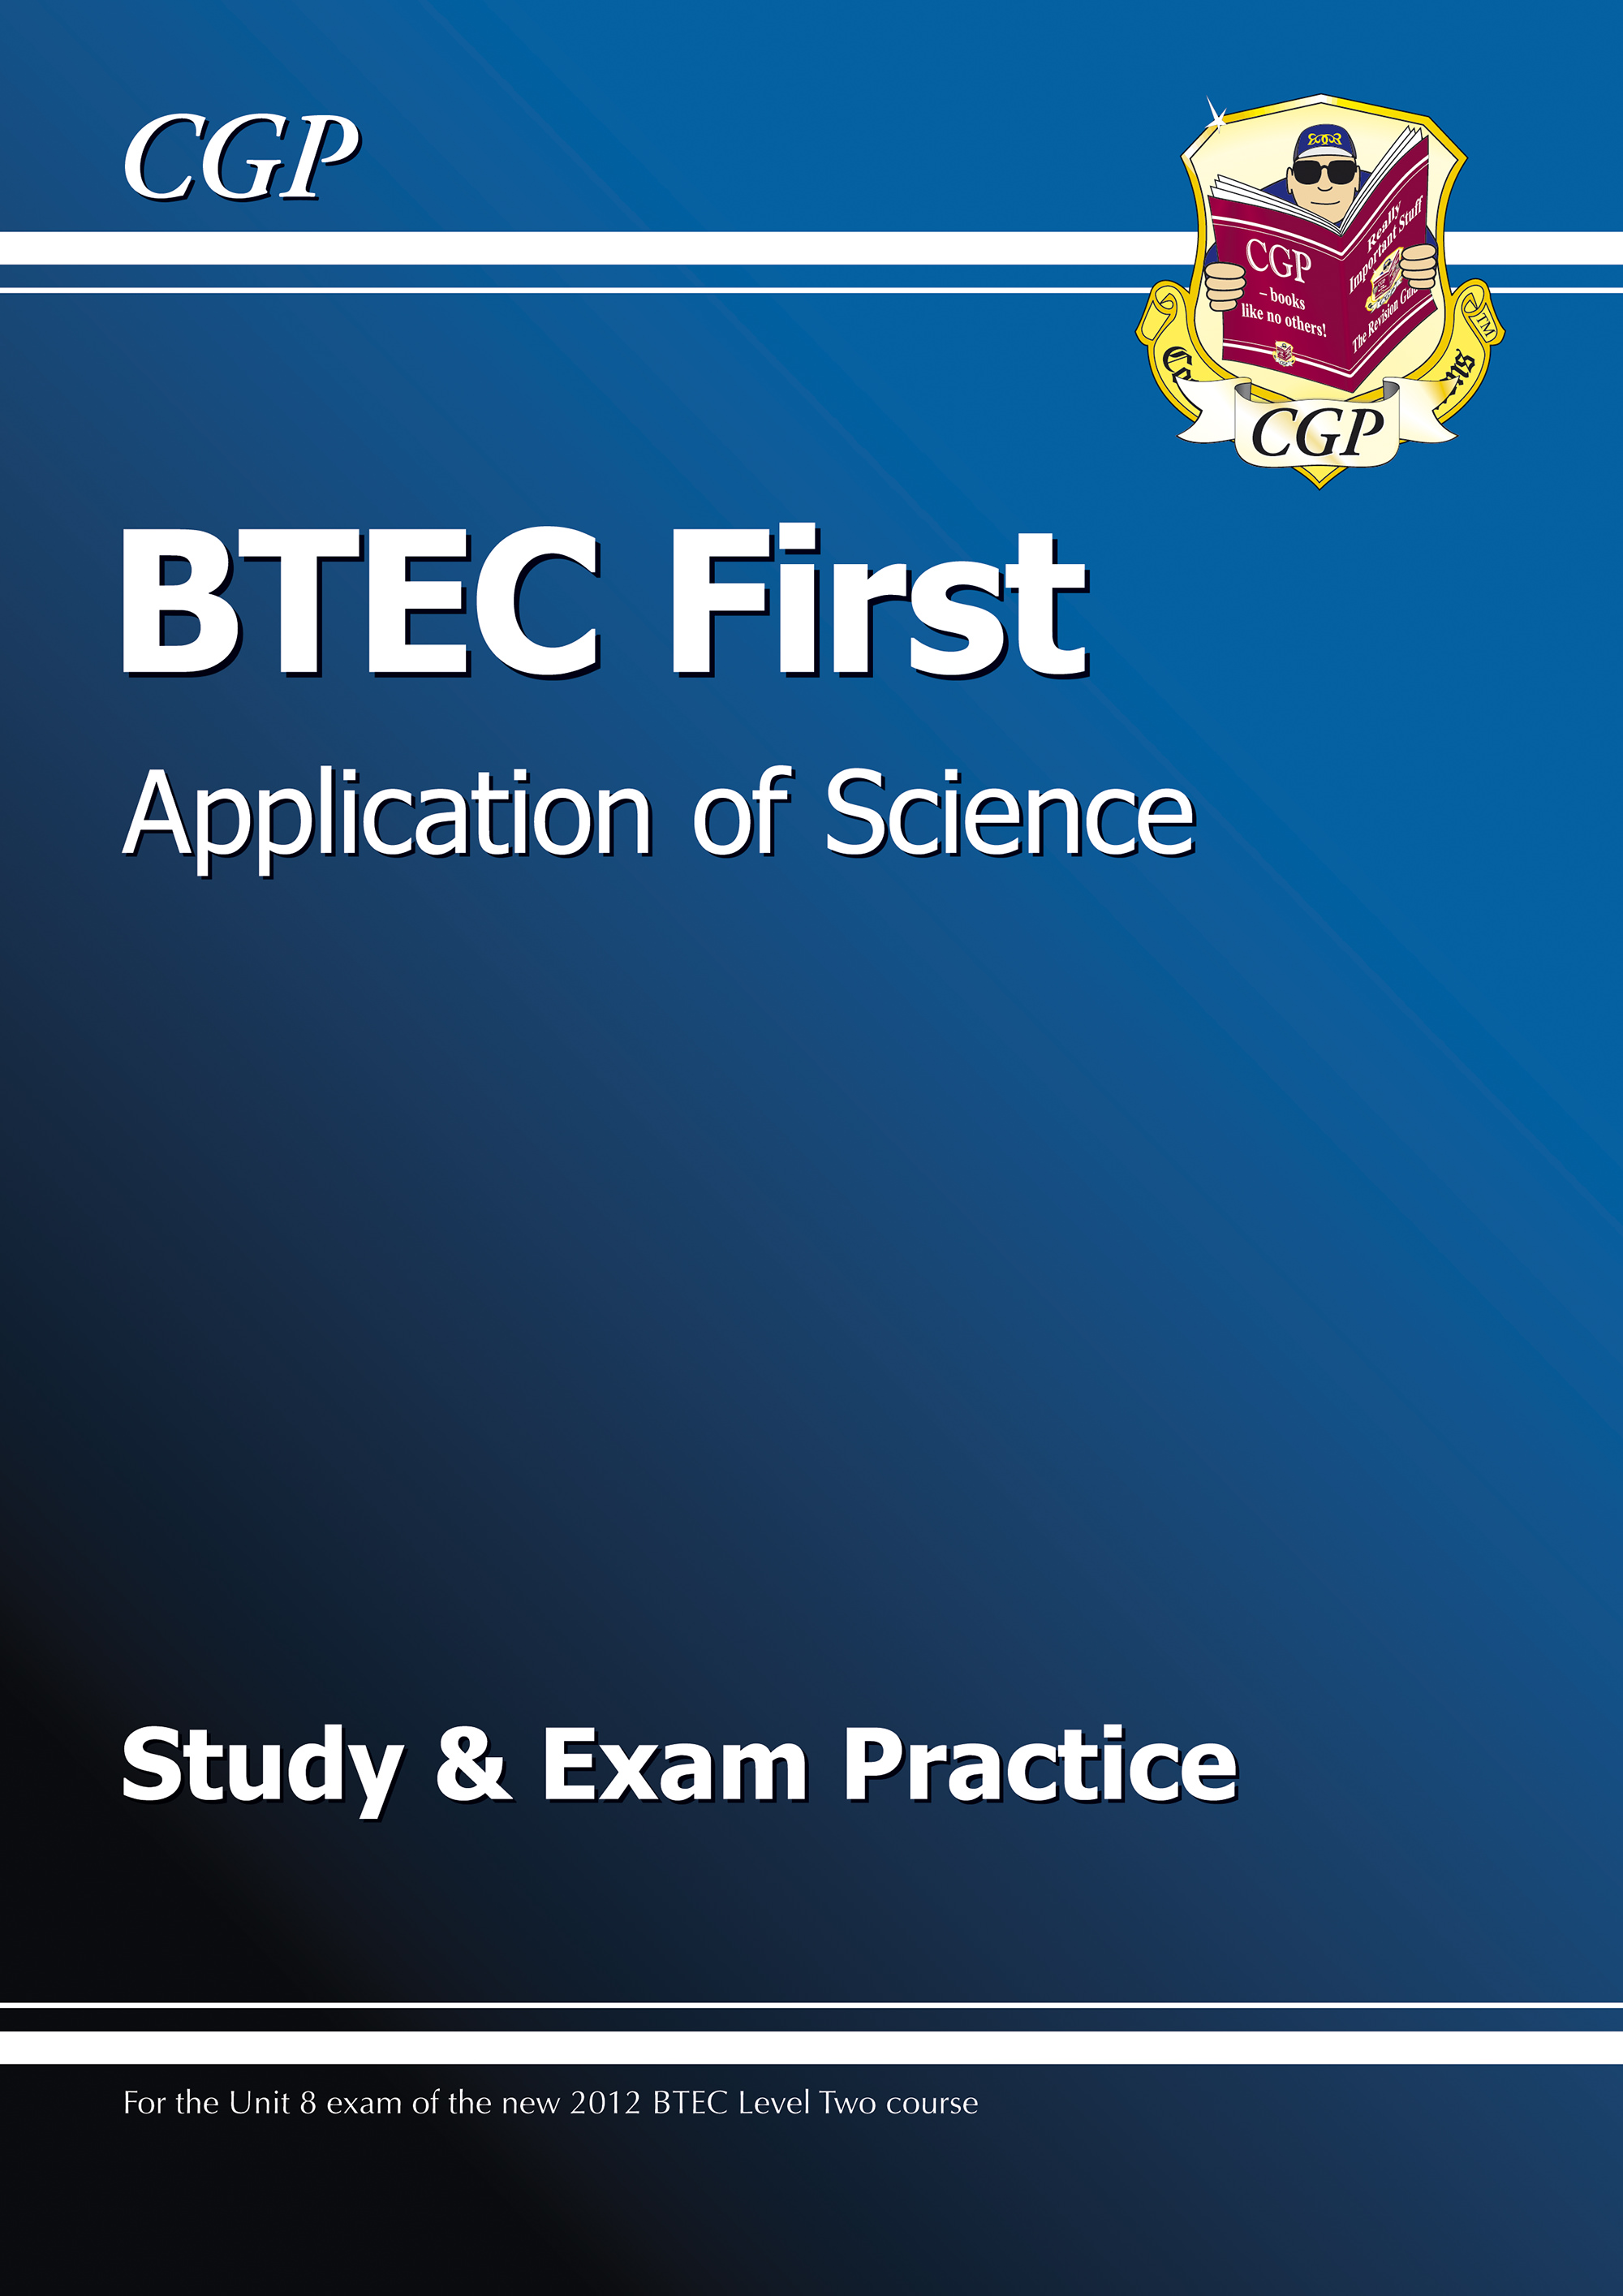 SERB1 - BTEC First in Application of Science Study & Exam Practice